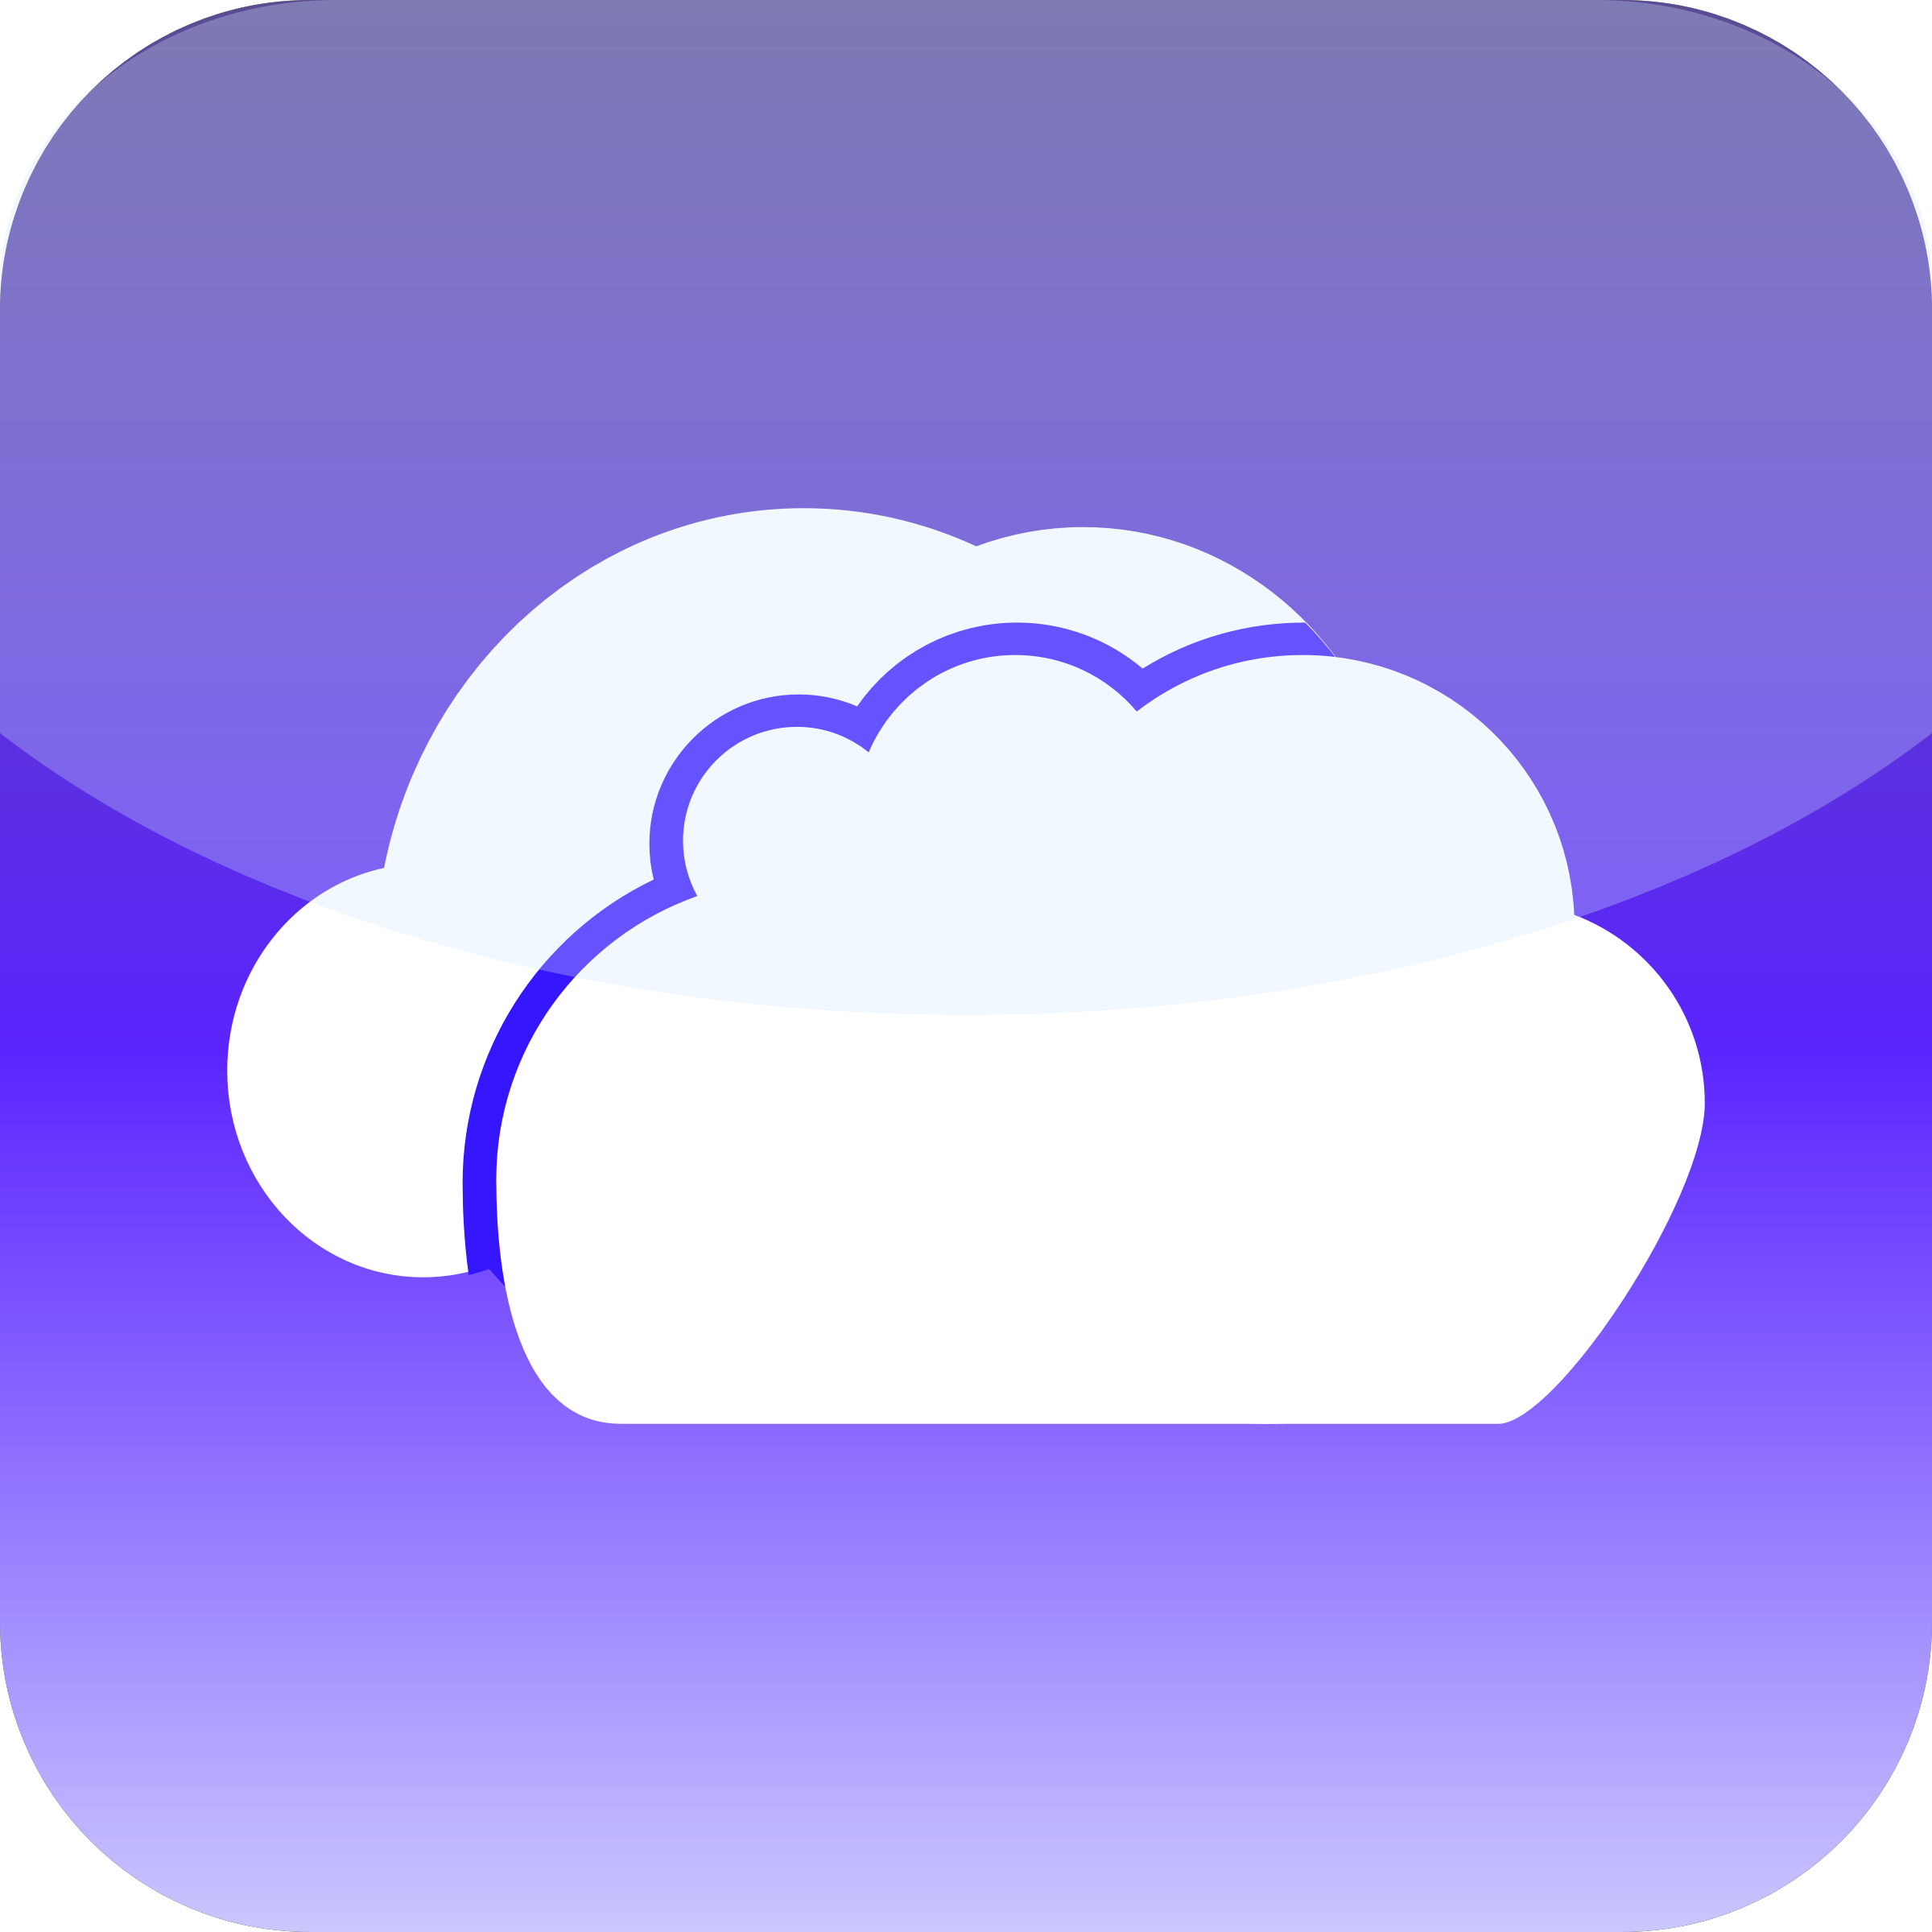 Simple Cloud Icon 2 by GDJ